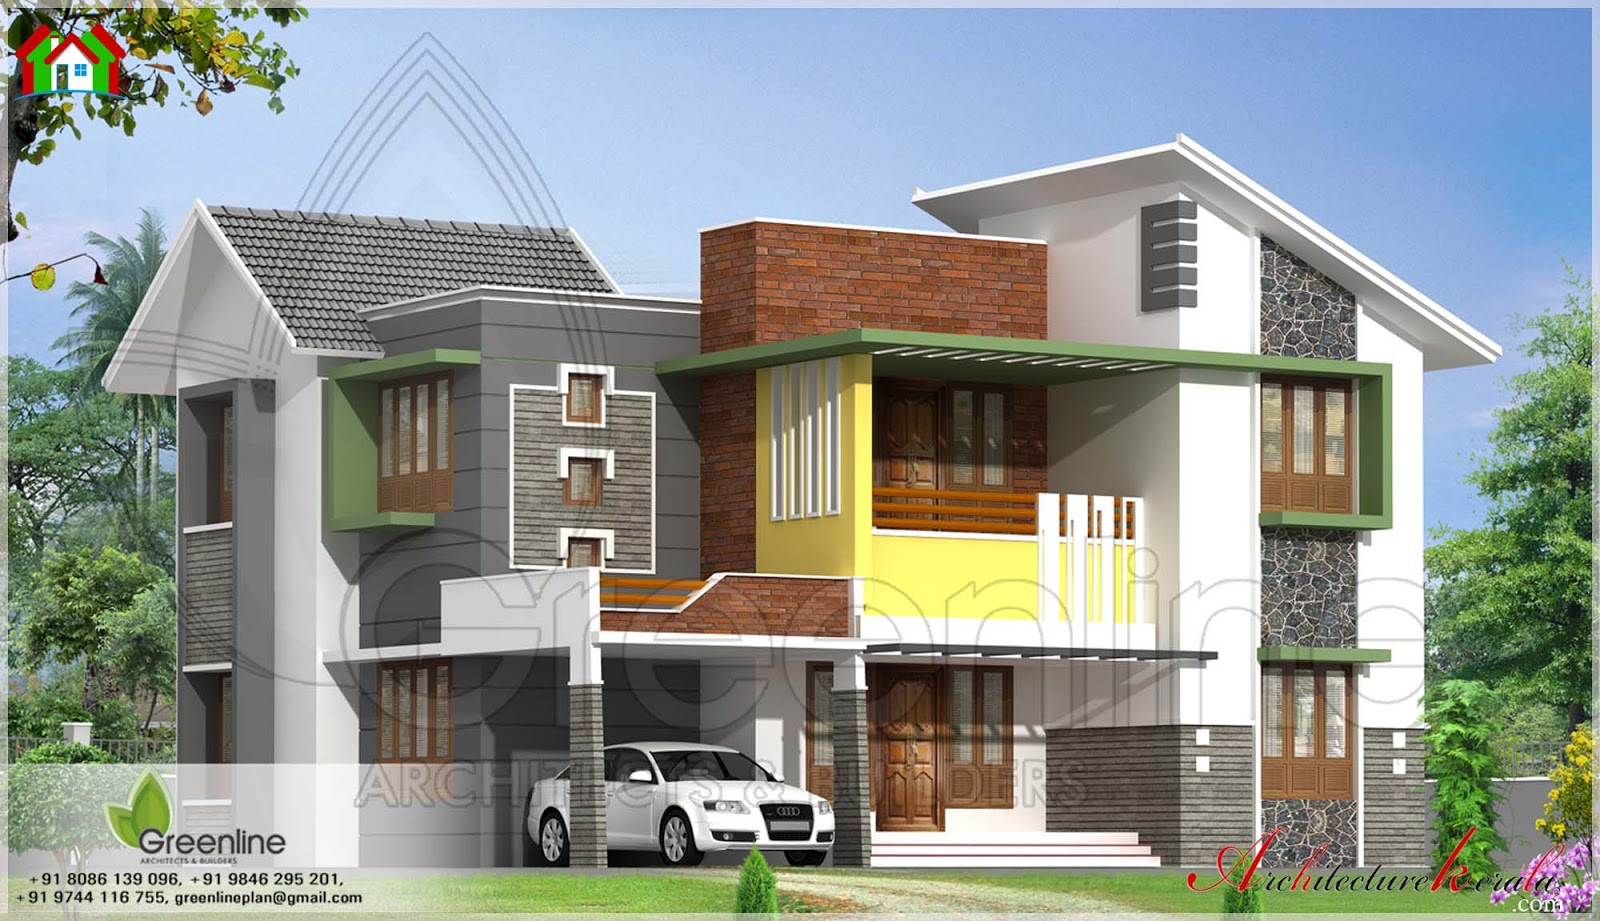 Small House Elevation Kerala Style : Modern style house elevation architecture kerala